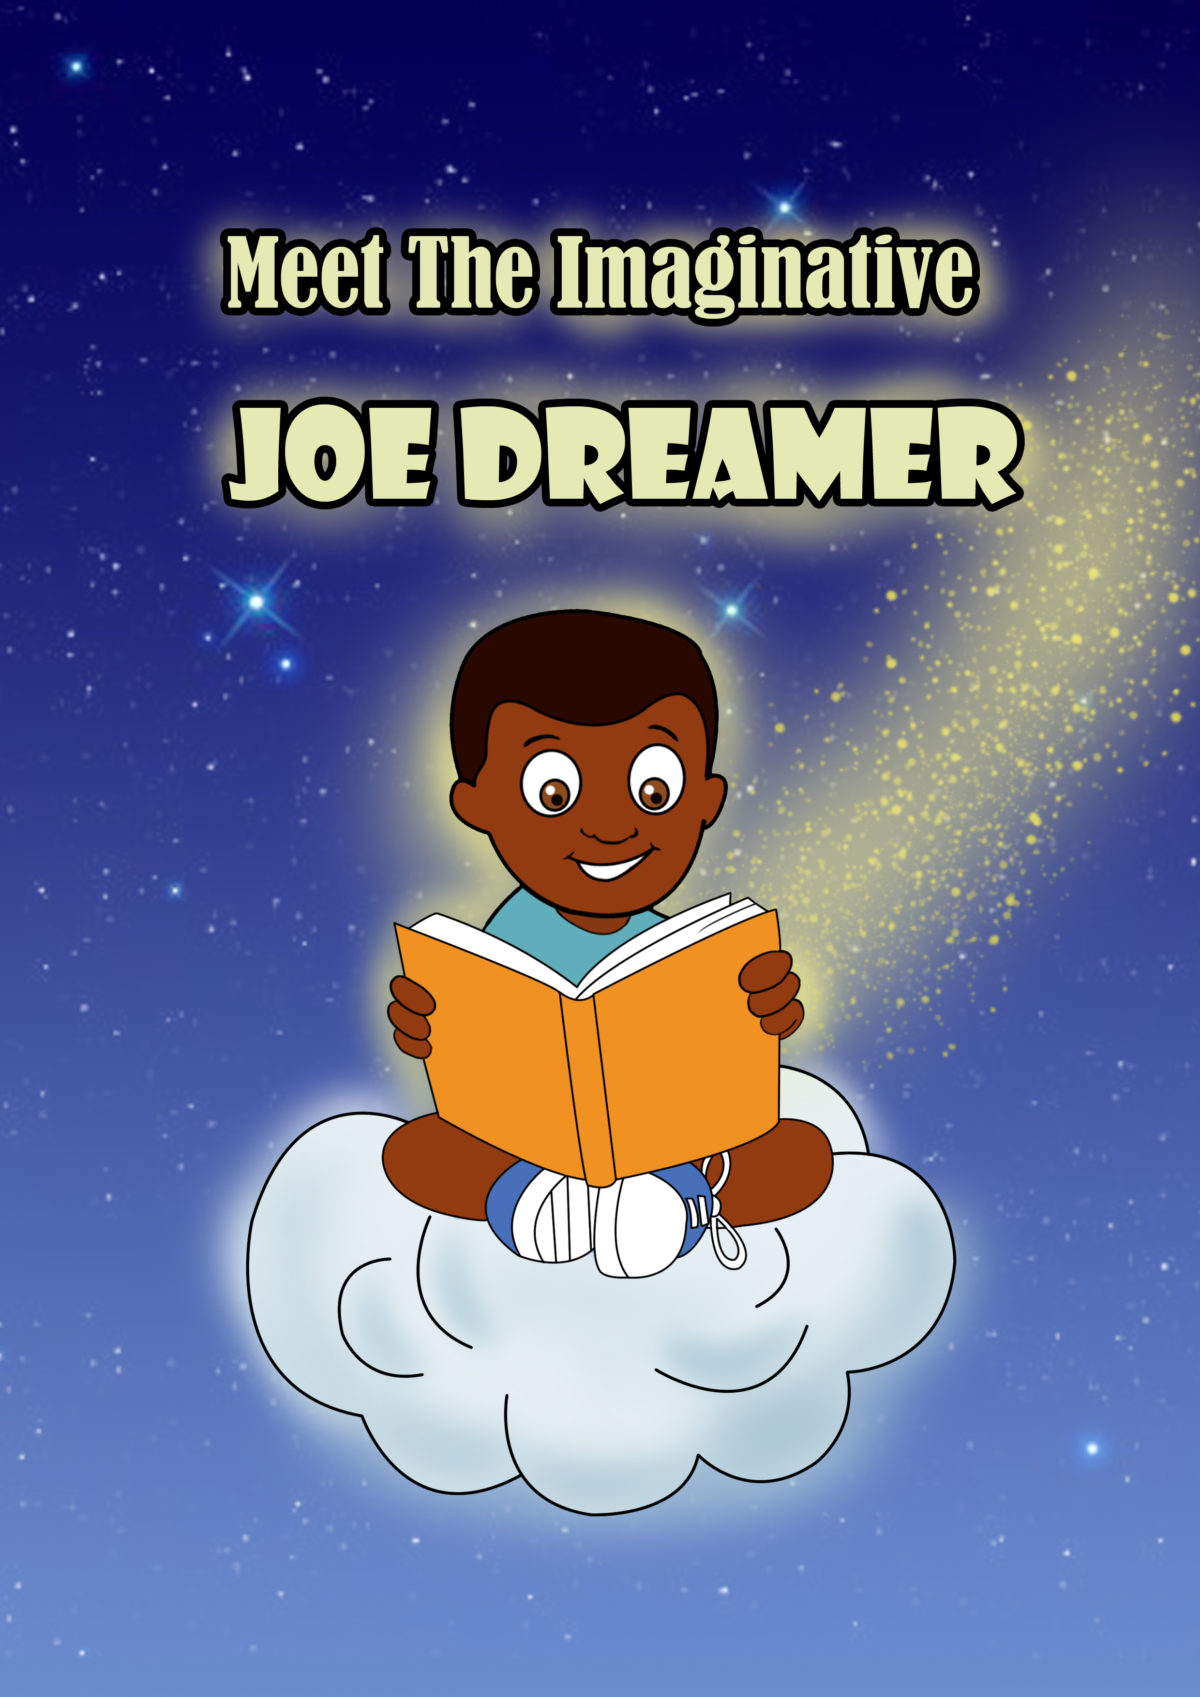 It is almost here – The Imaginative Joe Dreamer!